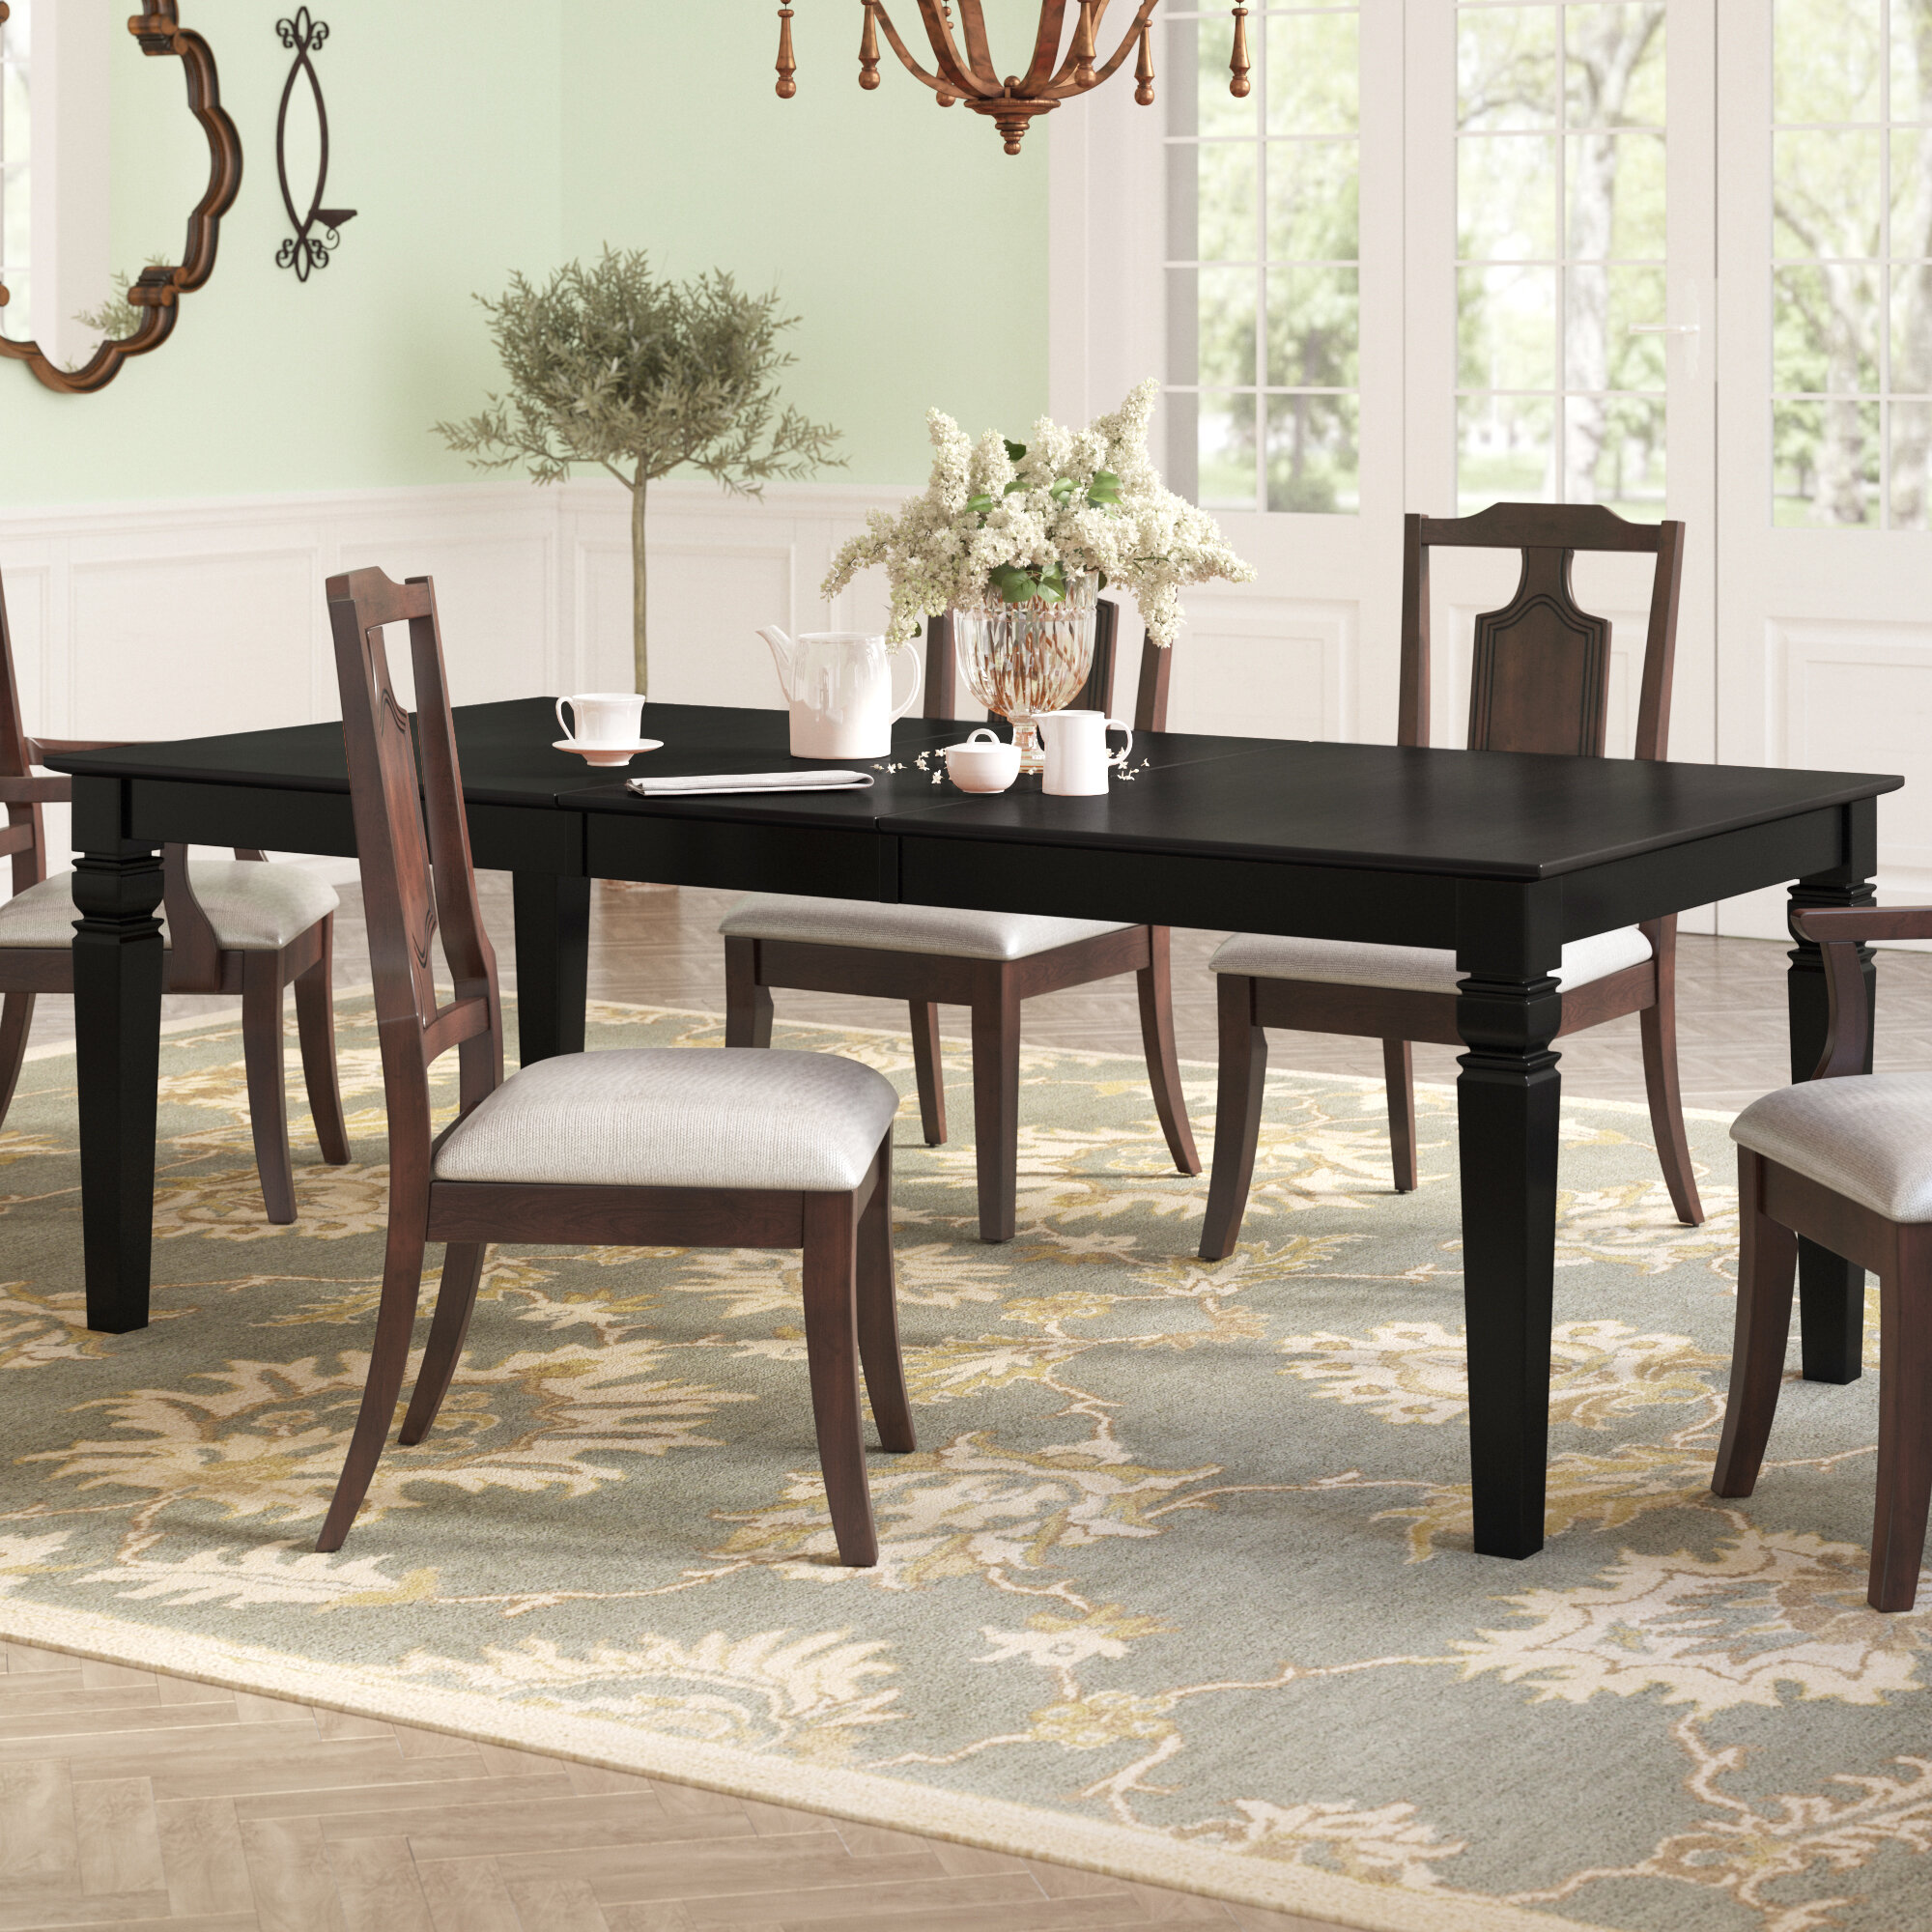 Darby Home Co Beesley Butterfly Leaf Solid Wood Dining Table & Reviews